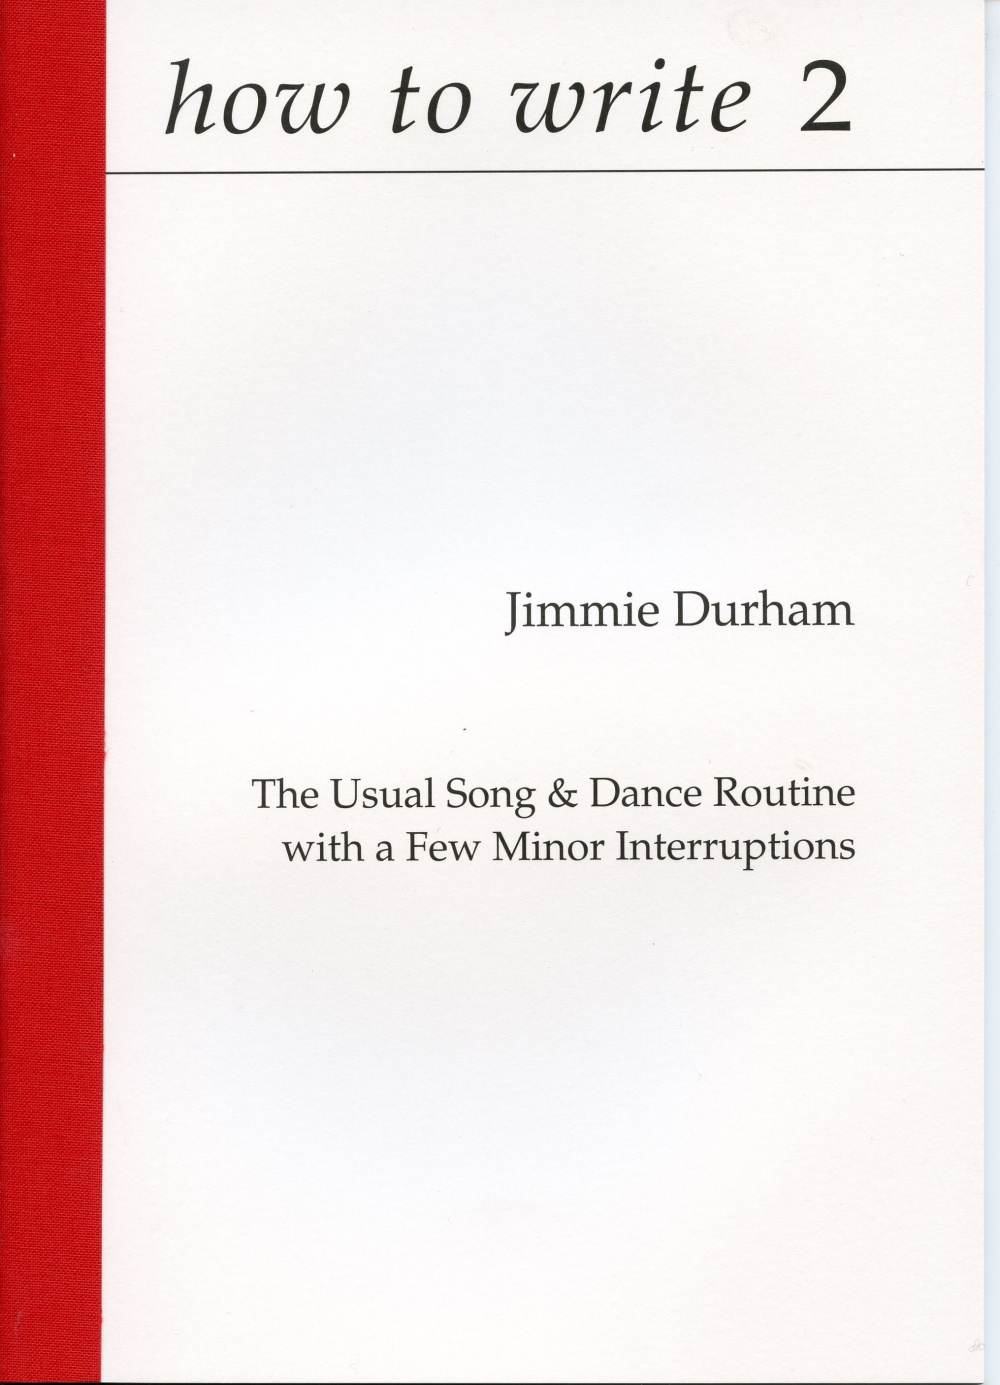 how to write 2   Jimmie Durham, The Usual Song & Dance Routine w